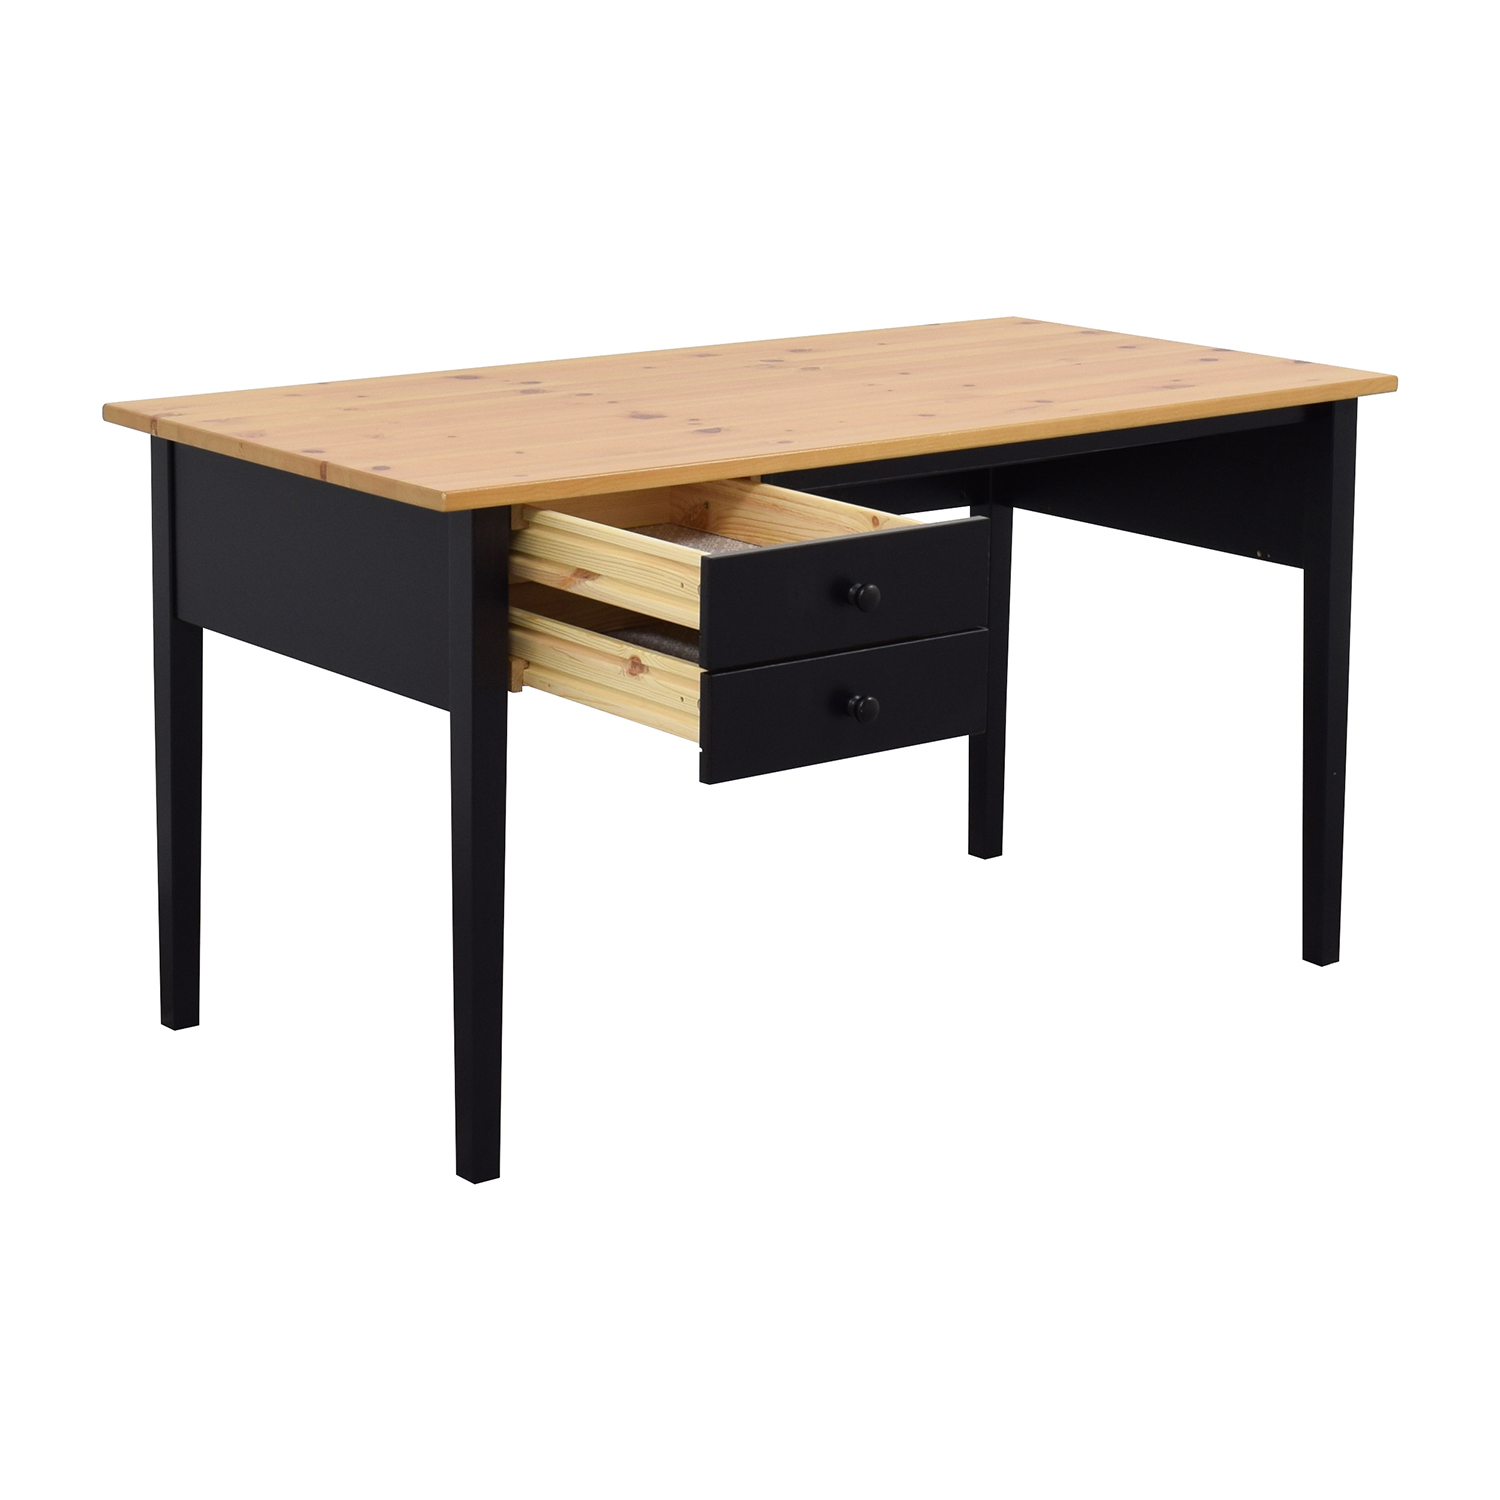 ikea table bureau micke desk black brown ikea small desks for small spaces joy studio design. Black Bedroom Furniture Sets. Home Design Ideas